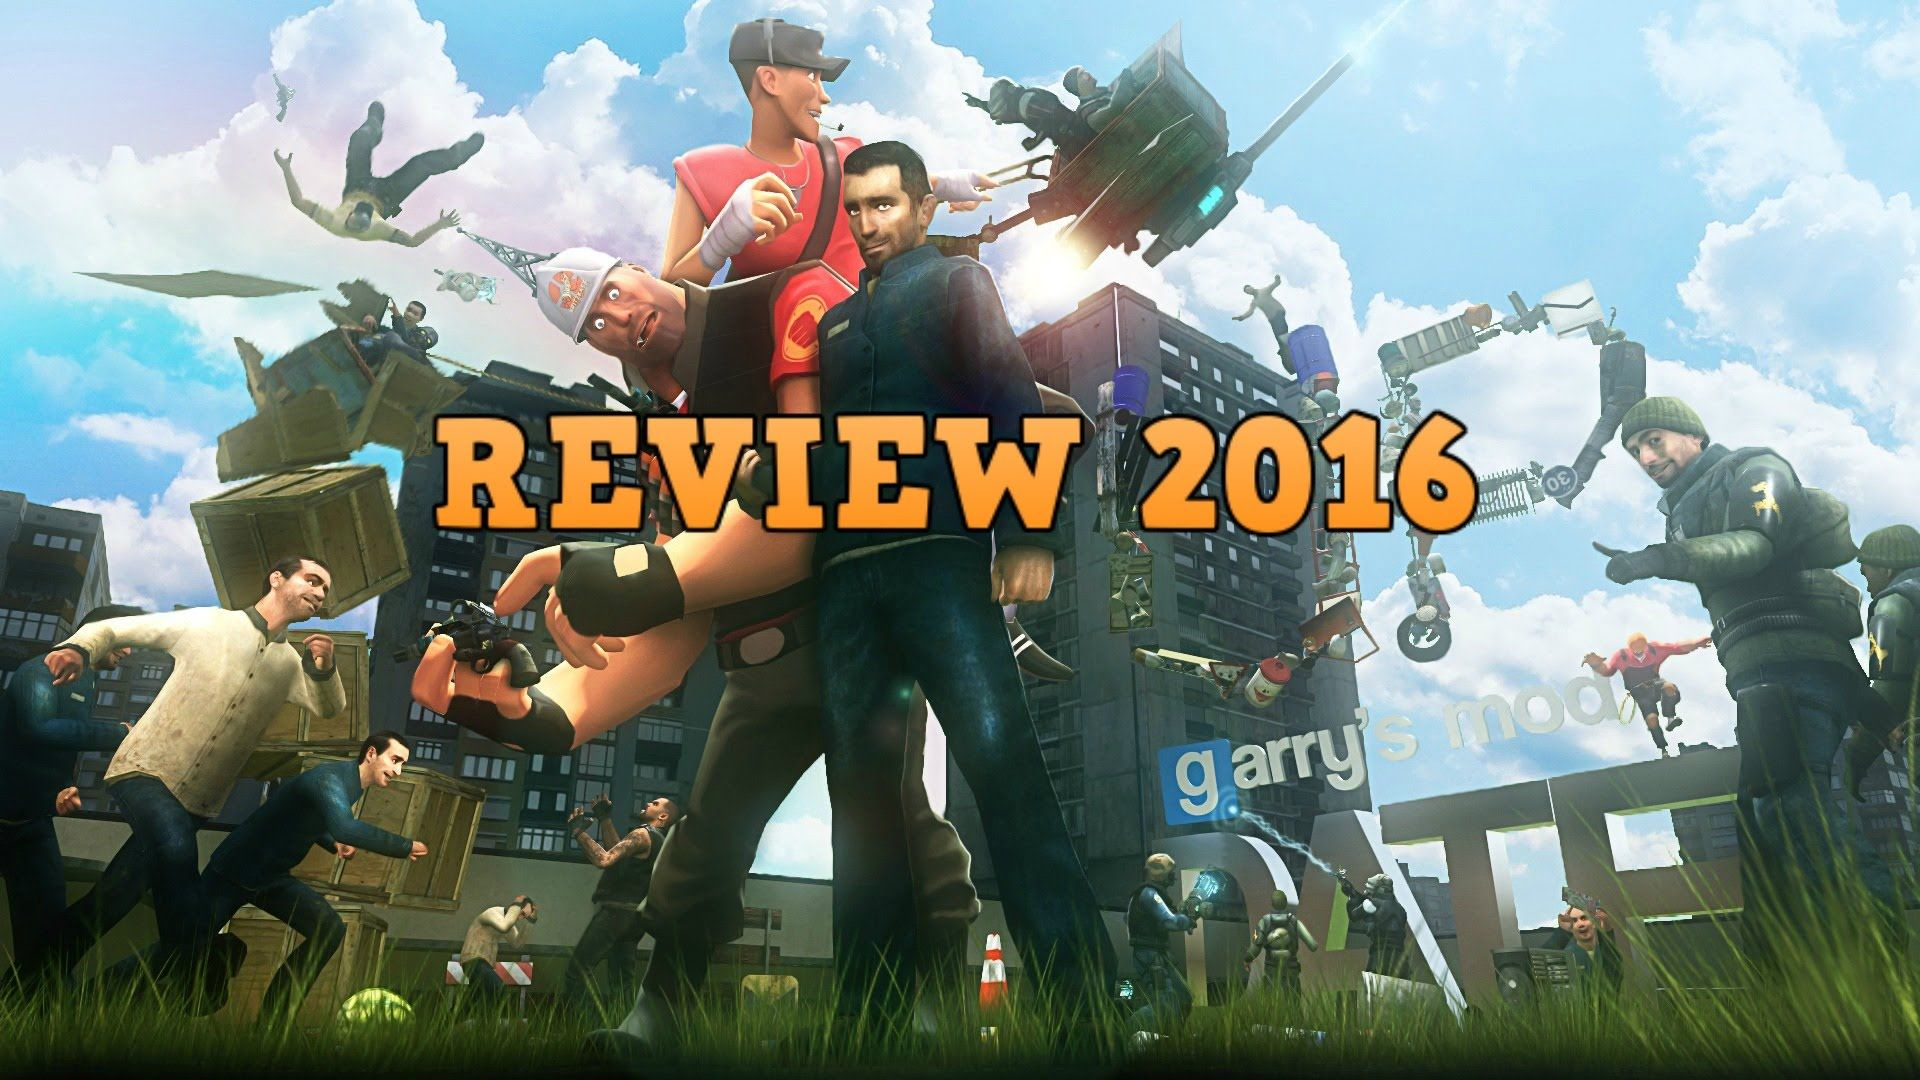 Garry's Mod Review 2016 | LatestGames | Games roblox, Best